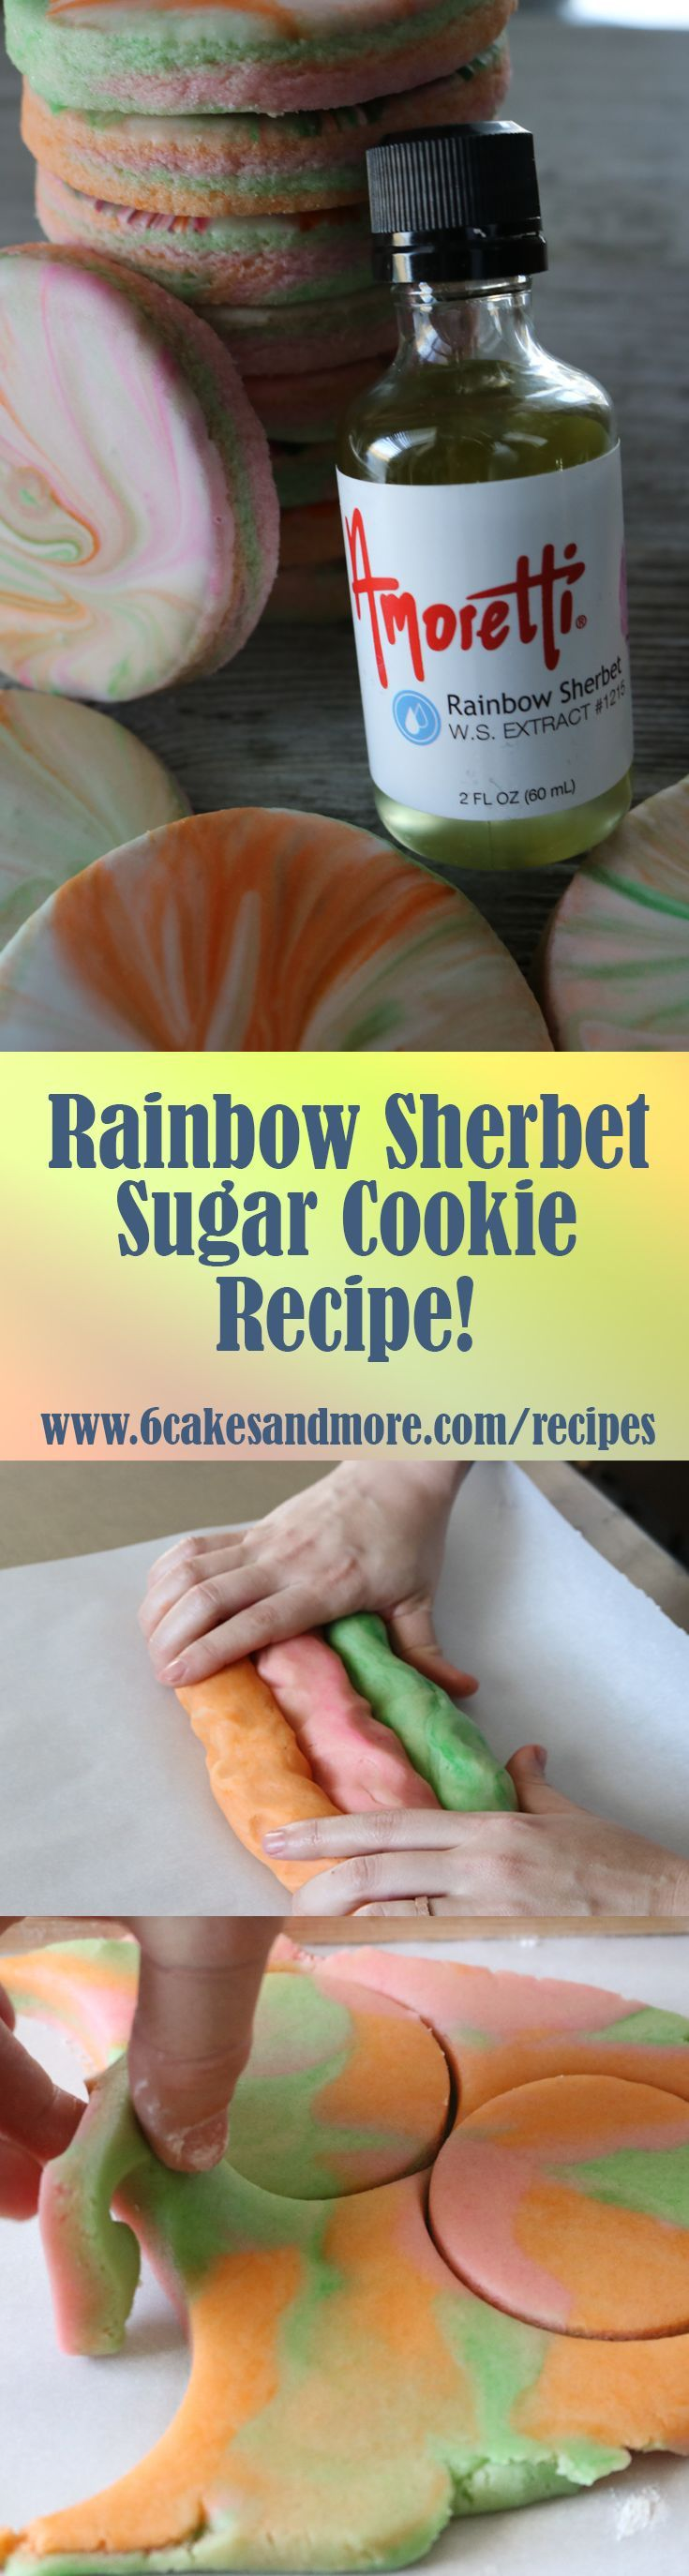 Rainbow Sherbet Sugar Cookie Recipe using Amoretti Rainbow Sherbet Extract!  These cookies are amazing and delicious!  We also marbled our royal icing!  Hope you all enjoy this recipe and let me know how they turn out!  God Bless! #nochillnospread #cutoutcookies #sugarcookies #sugarcookierecipe #nospreadsugarcookies #nochillsugarcookies #6cakesandmore #everythingcakeandcookies #amoretti #rainbowdust